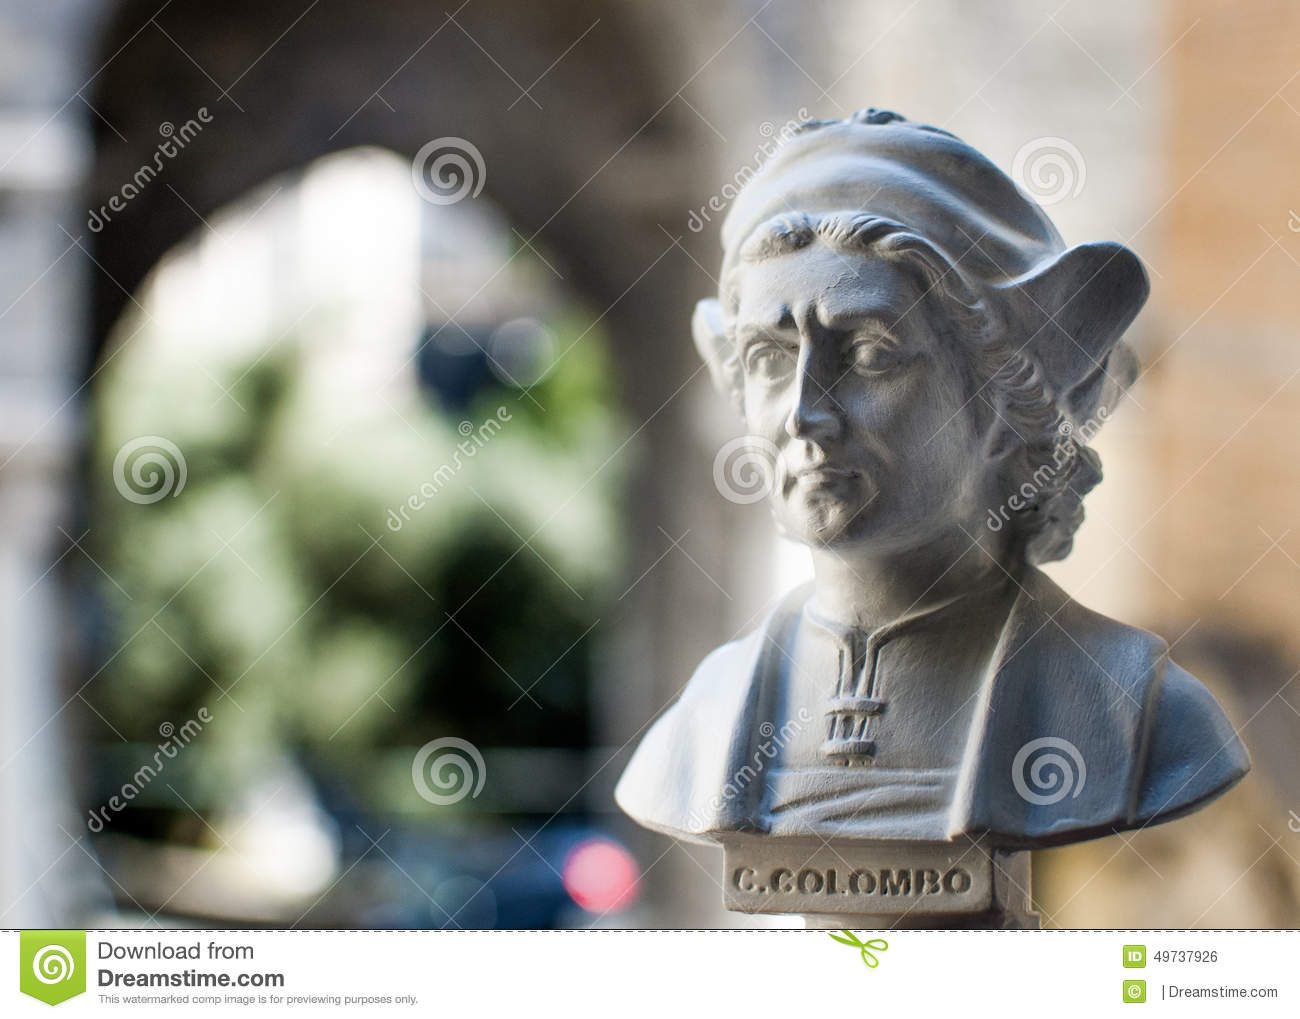 the great explorer christopher columbus Christopher columbus: christopher columbus, master navigator whose four transatlantic voyages opened the way for european exploration and colonization of the americas.